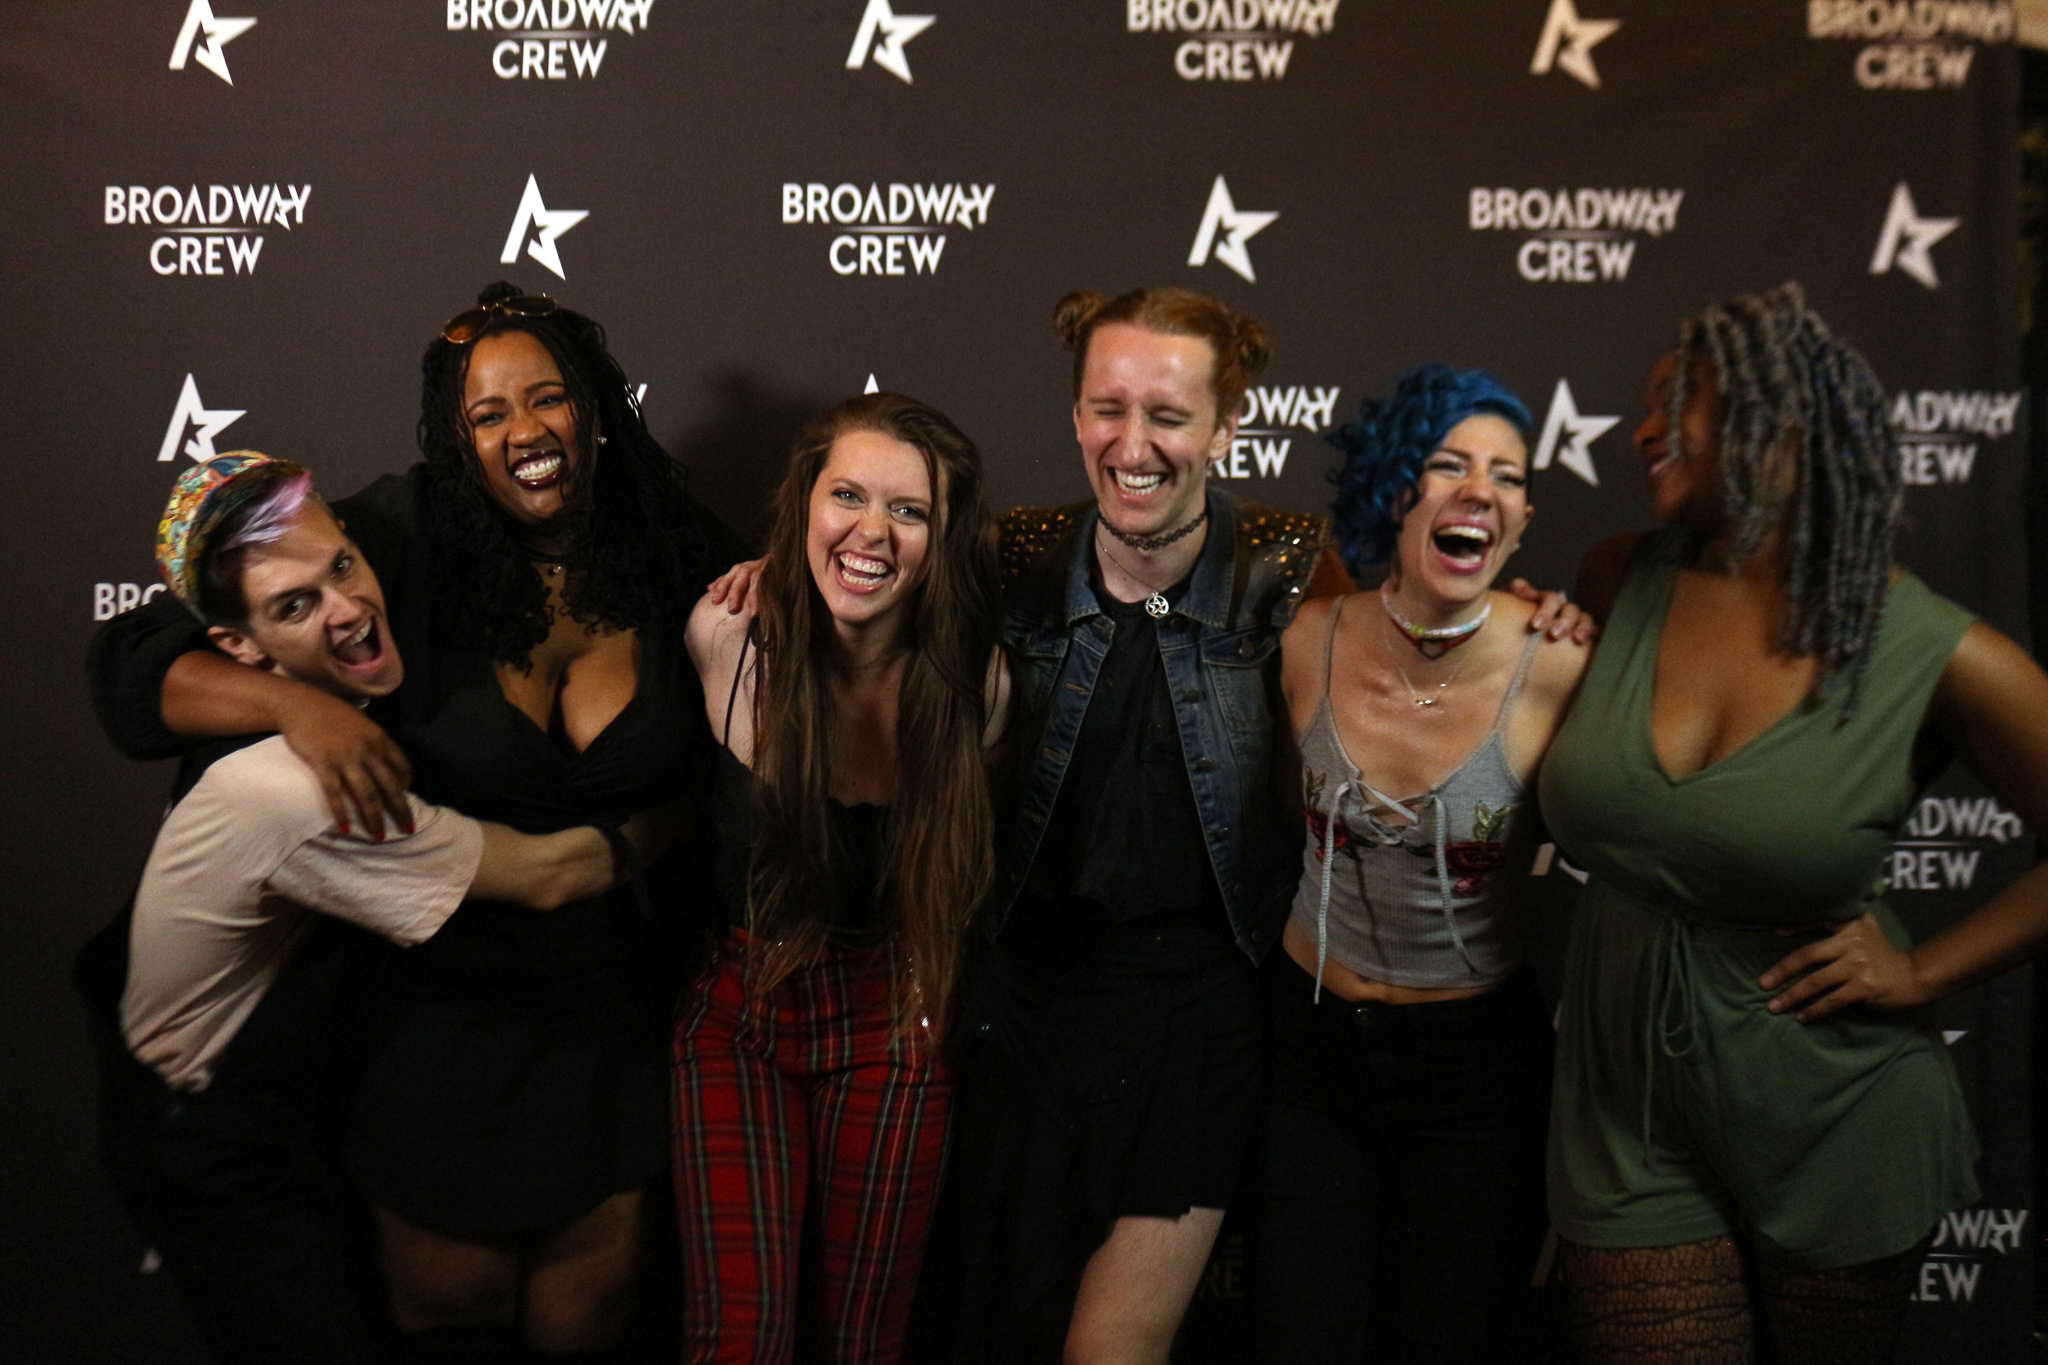 The Neon Coven celebrating at Broadway Crew's One Year Anniversary blow out!